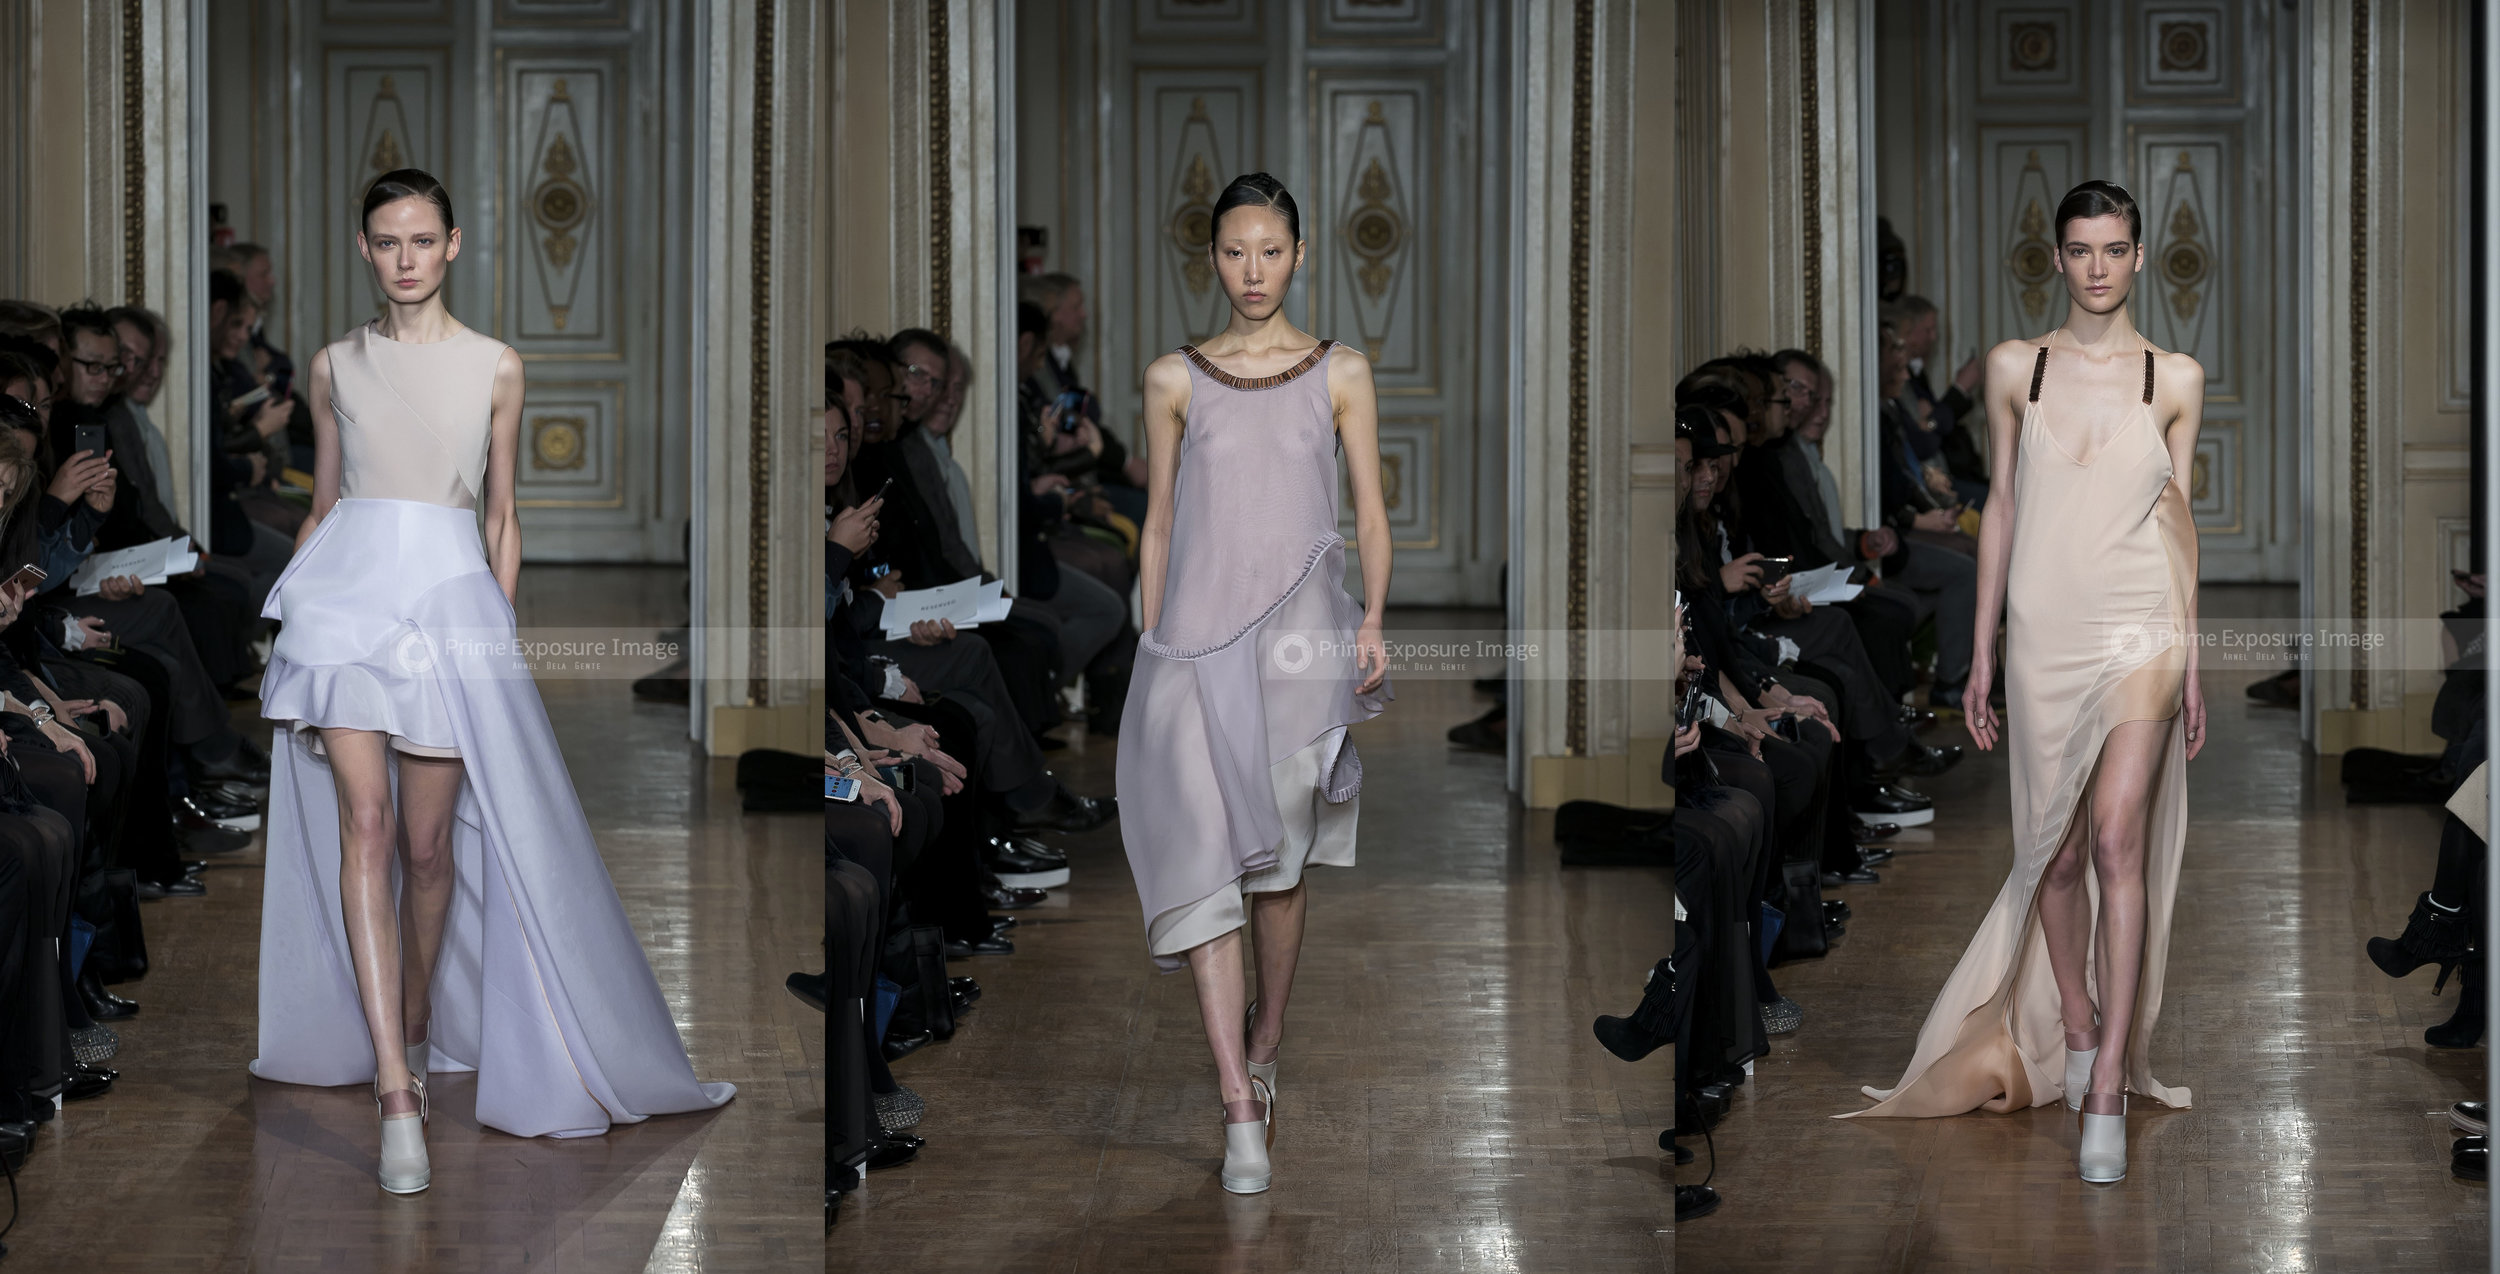 Ilja Couture Amsterdam Spring/Summer 2016 at Gallery Vivienne